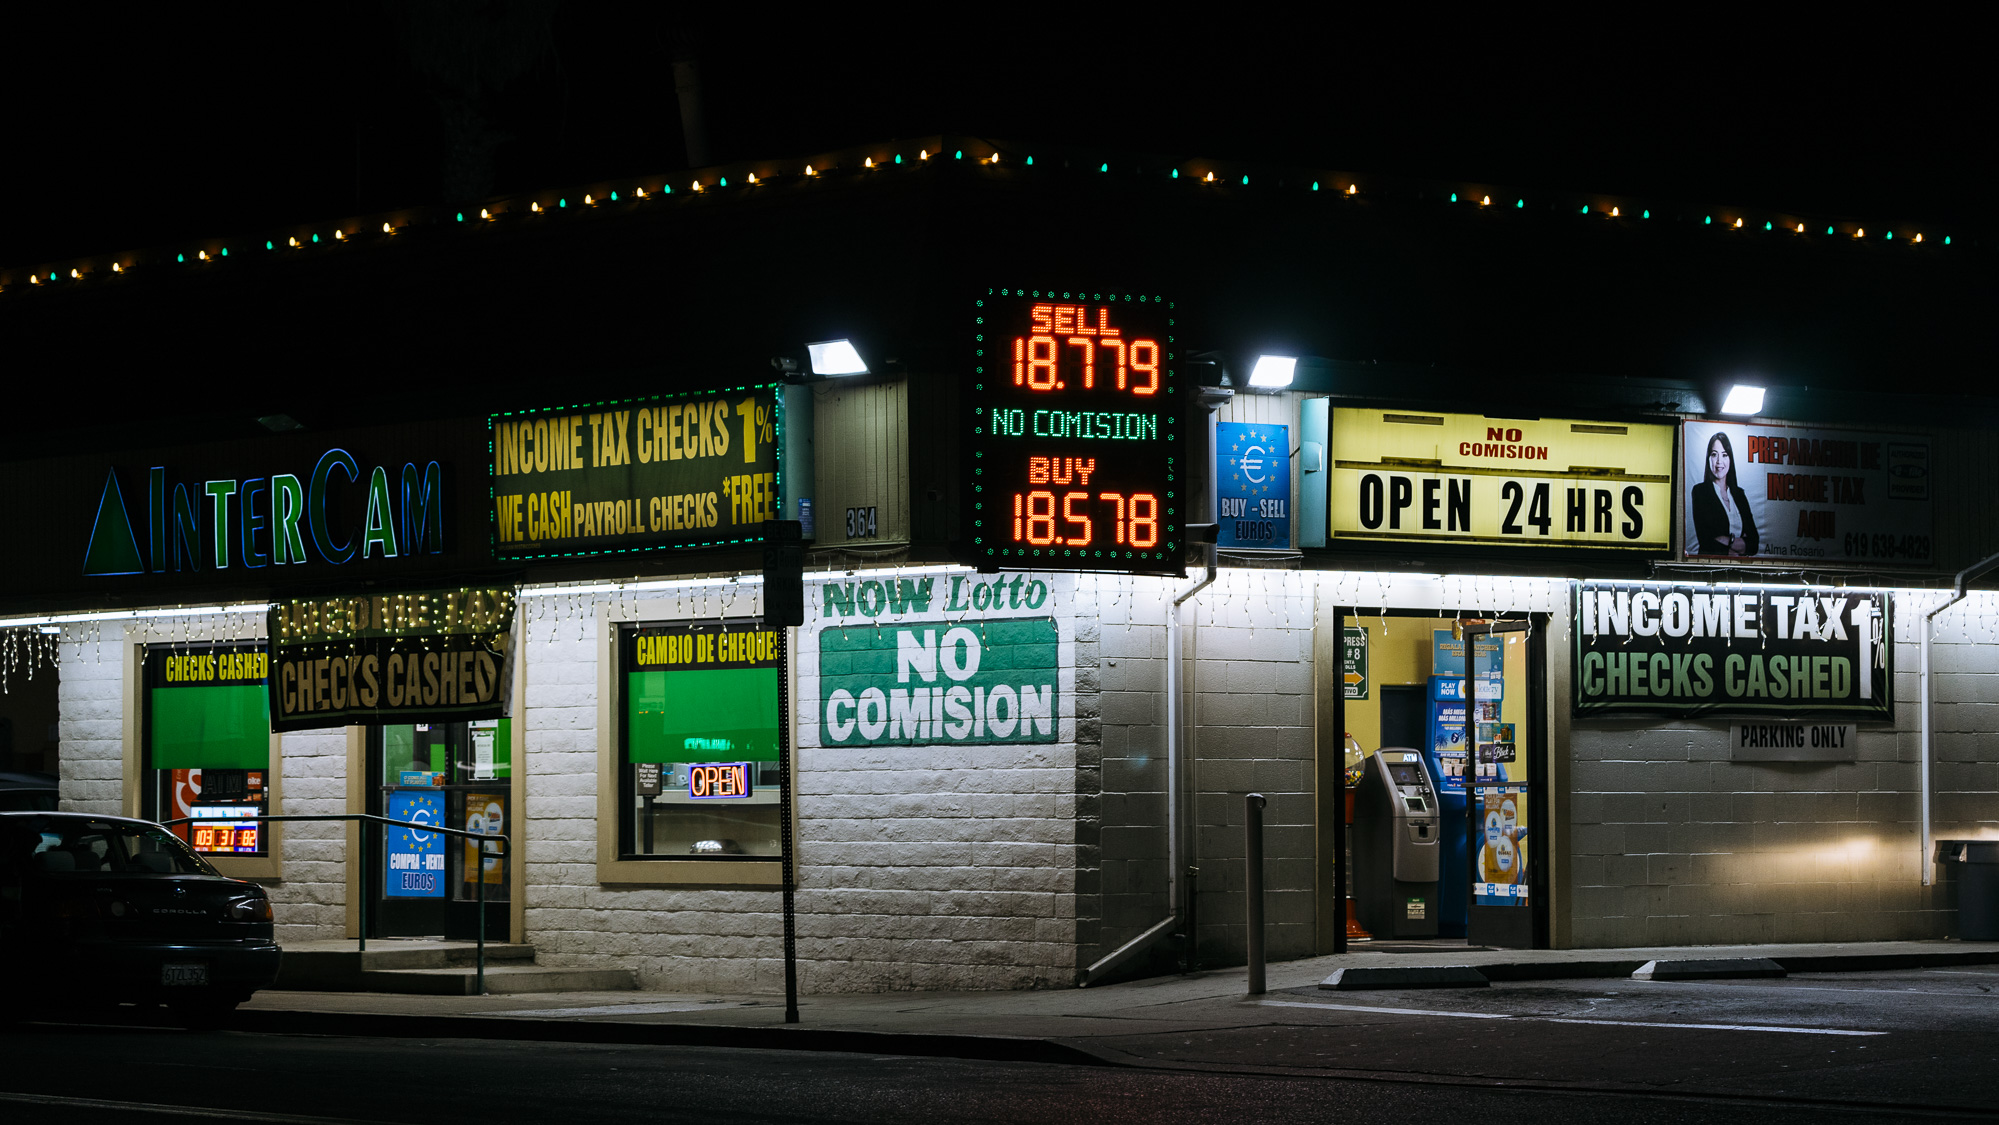 IMAGE CAPTION:  24 hour currency exchange and predatory financial services are available within walking distance of the San Ysidro Port of Entry.